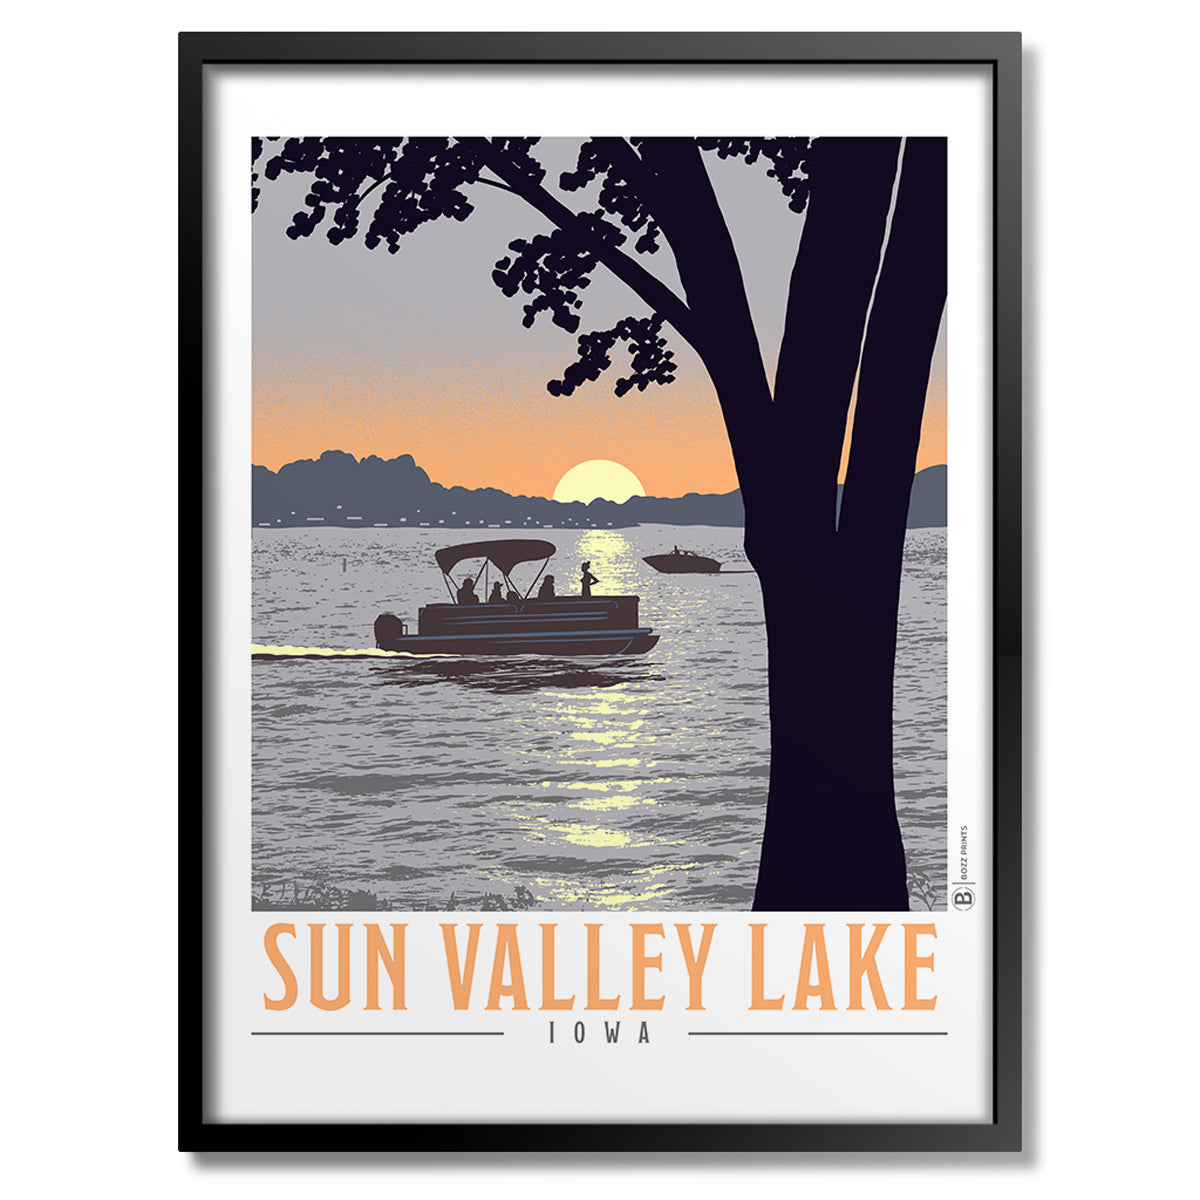 Sun Valley Lake